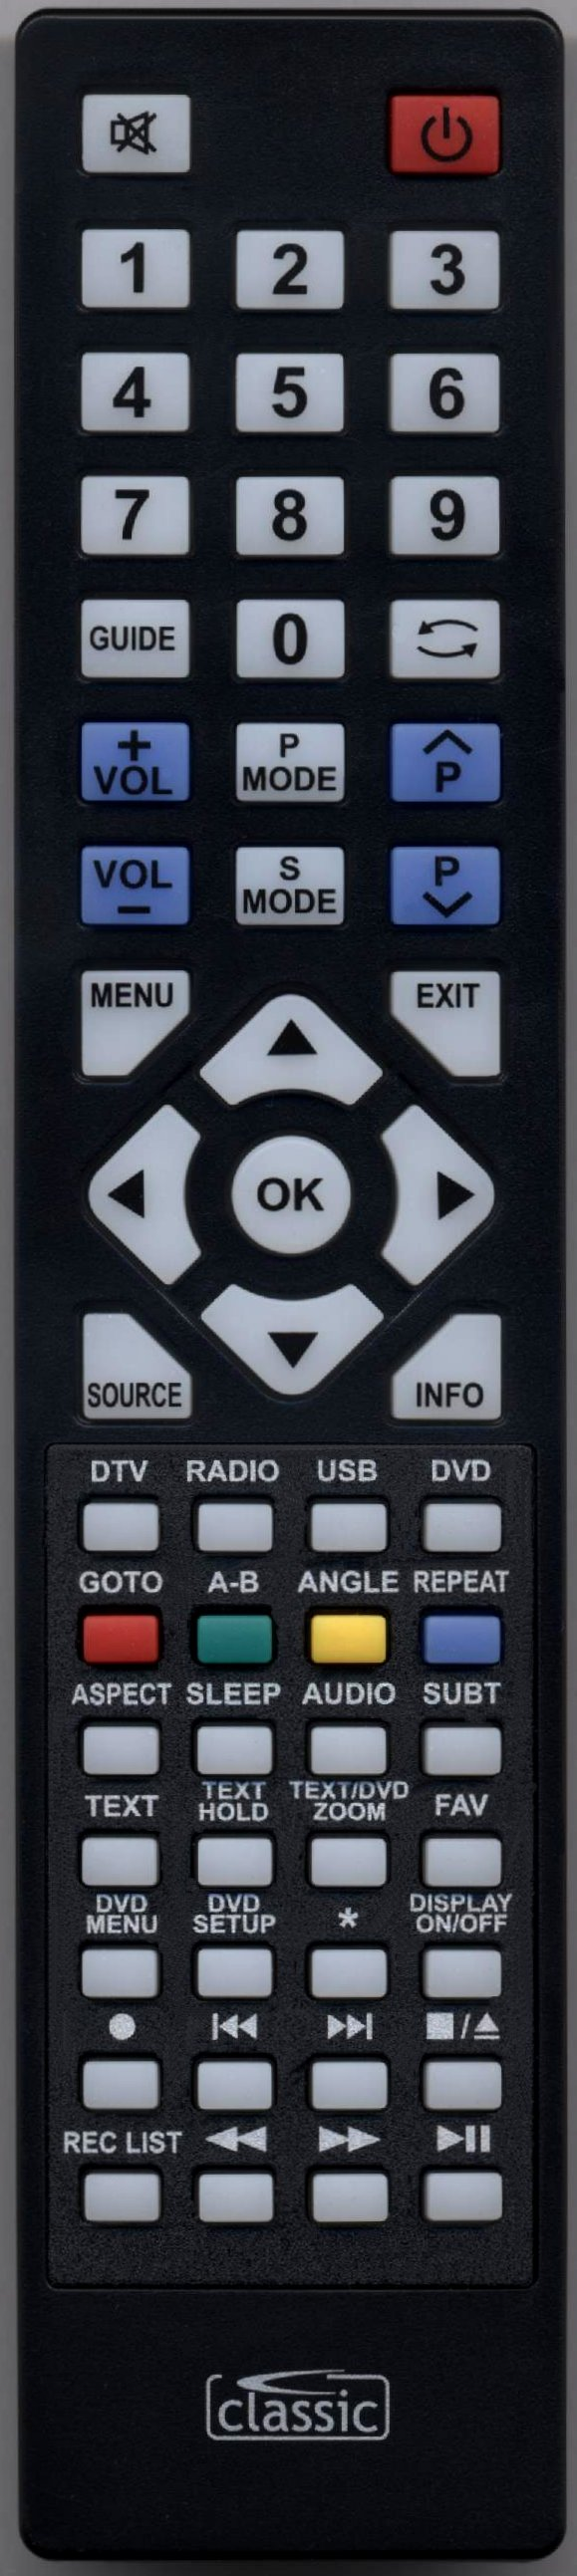 BLAUPUNKT 185-207I-GB-3B-HKDUPS-UK Remote Control Alternative